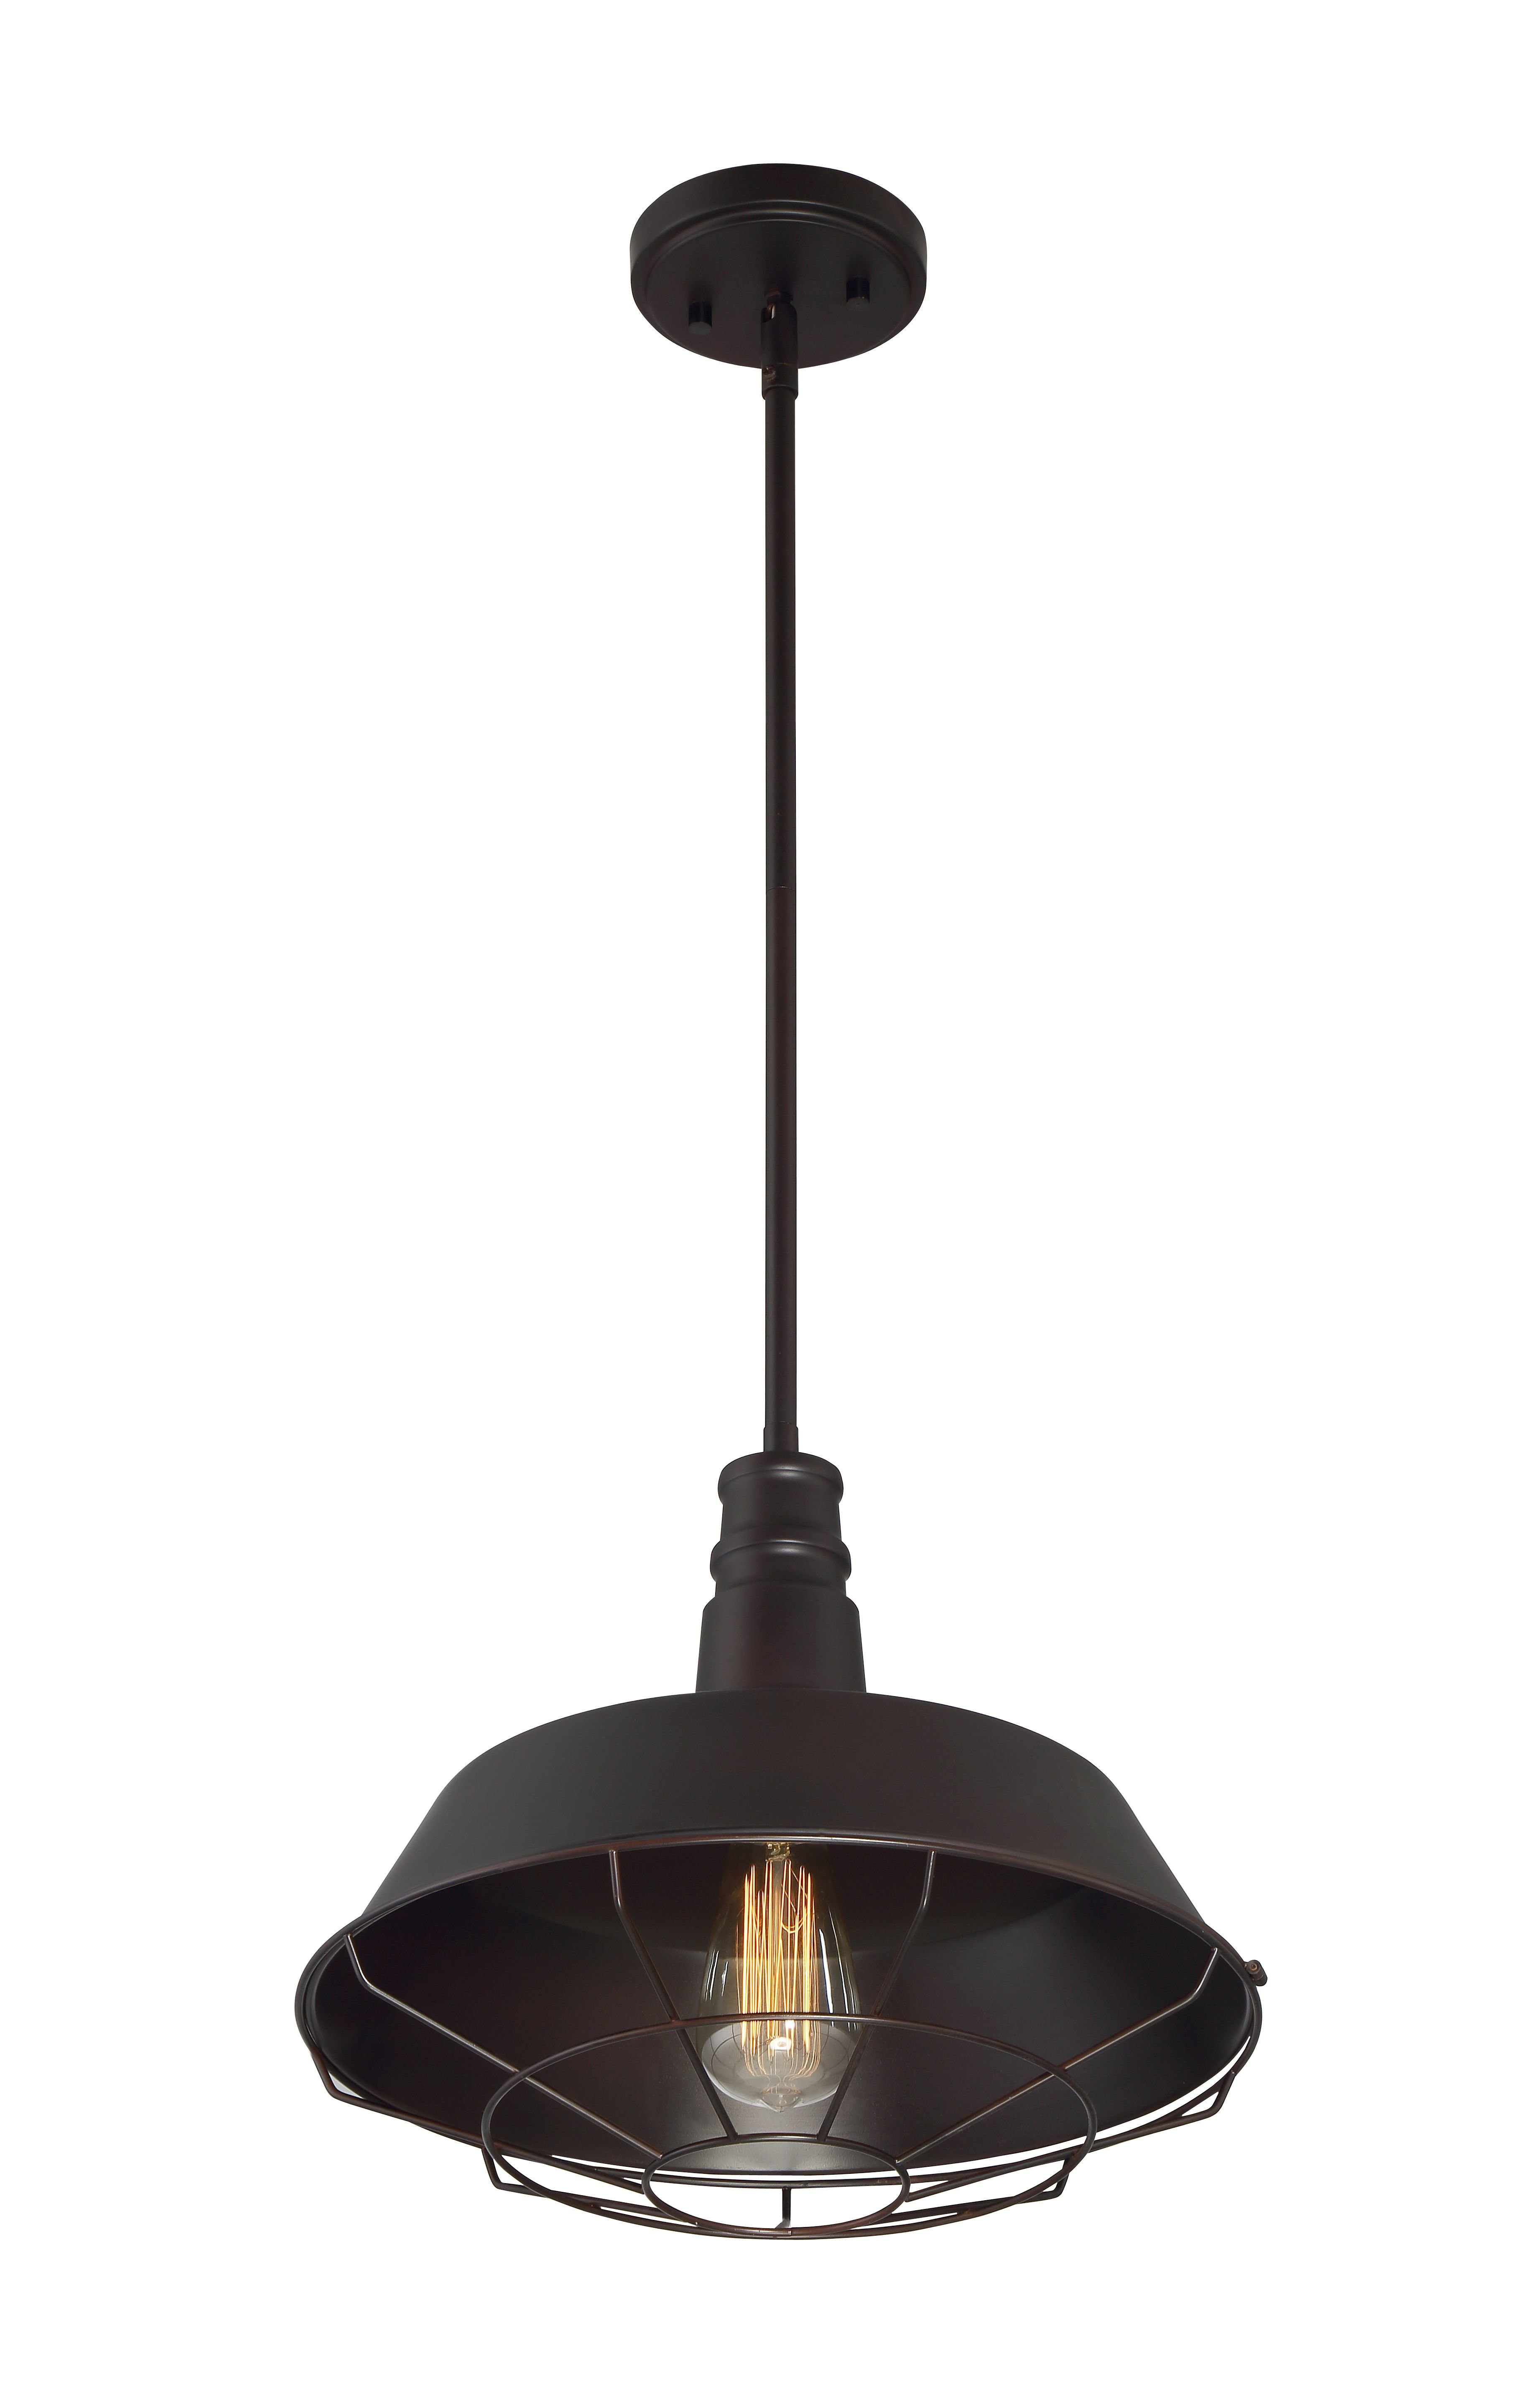 Juneau 1 Light Single Dome Pendant Intended For Barrons 1 Light Single Cylinder Pendants (View 14 of 30)